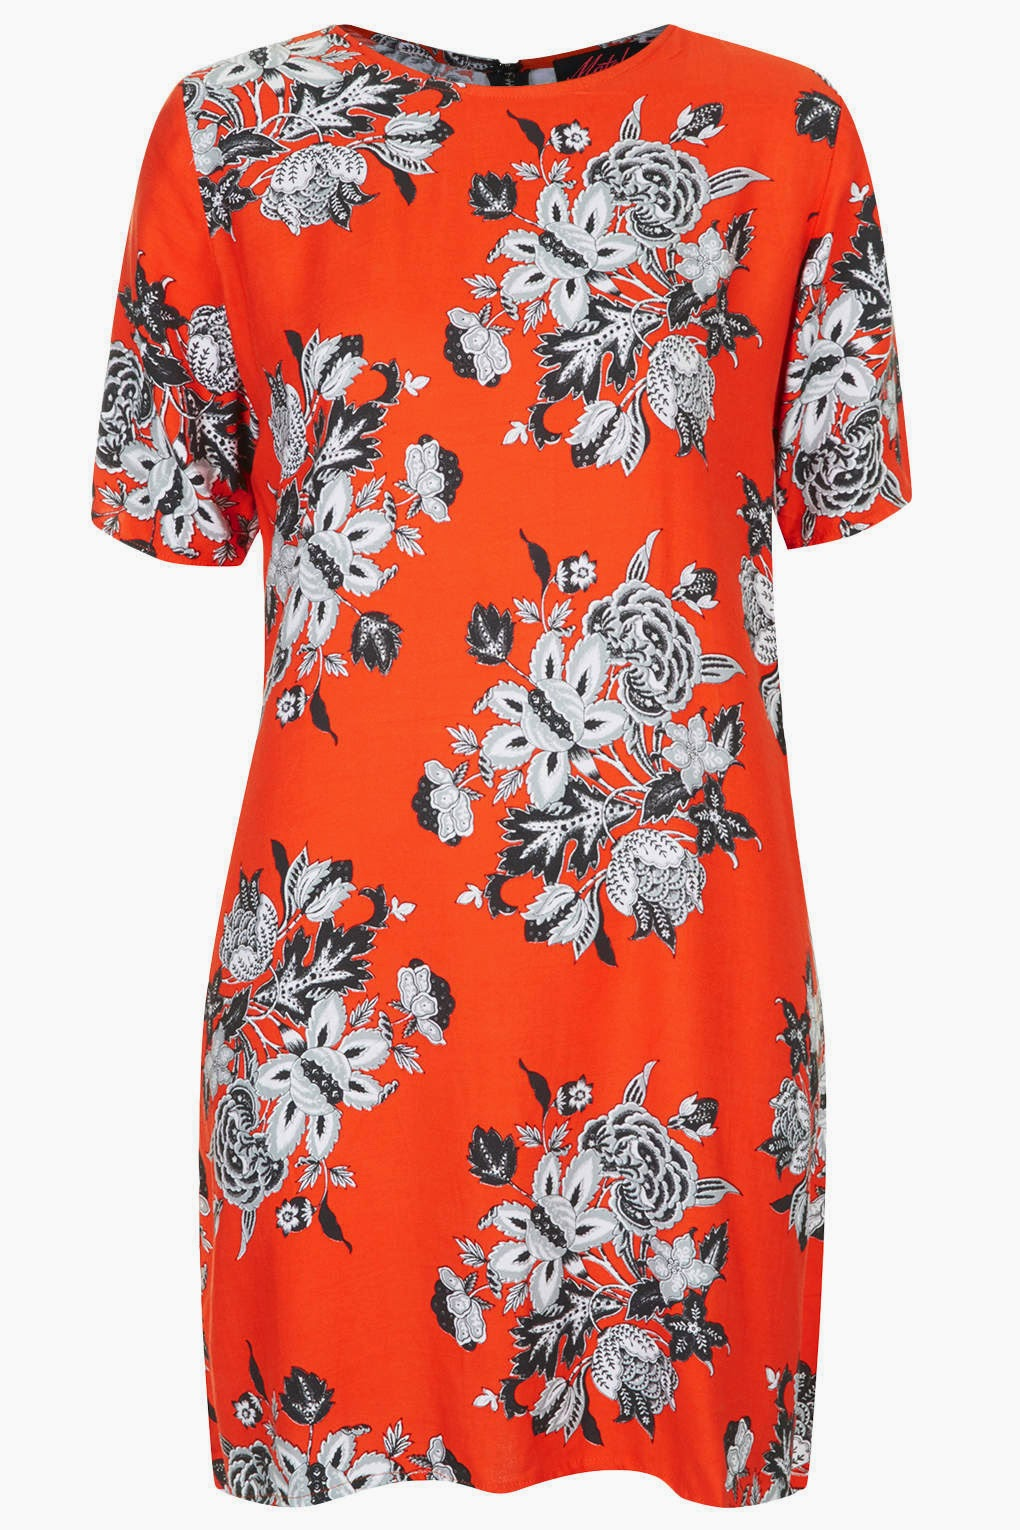 topshop orange dress